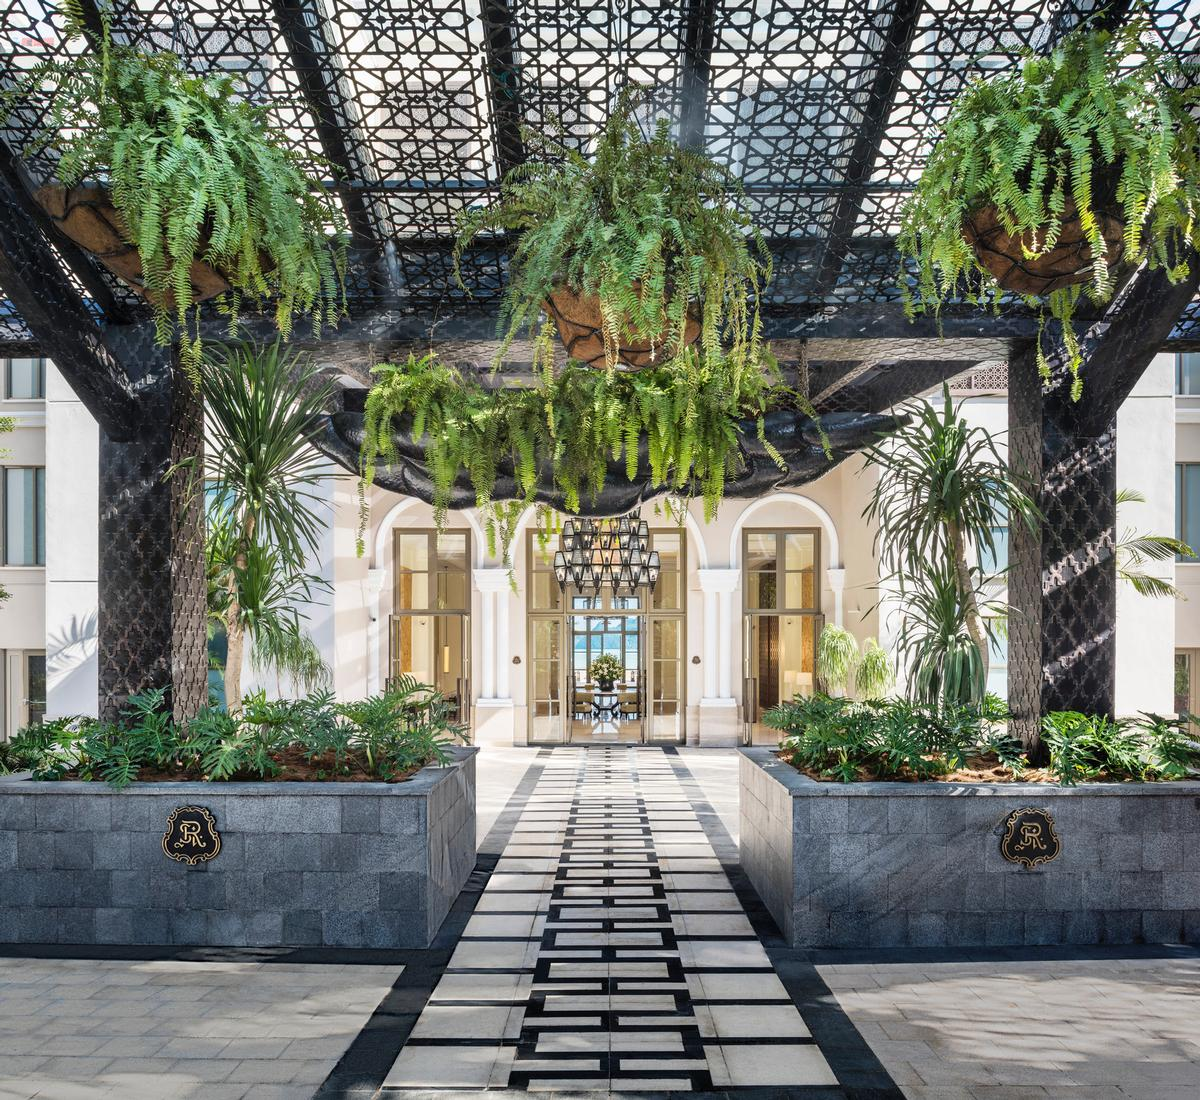 The rainforest-inspired hotel lobby / St Regis